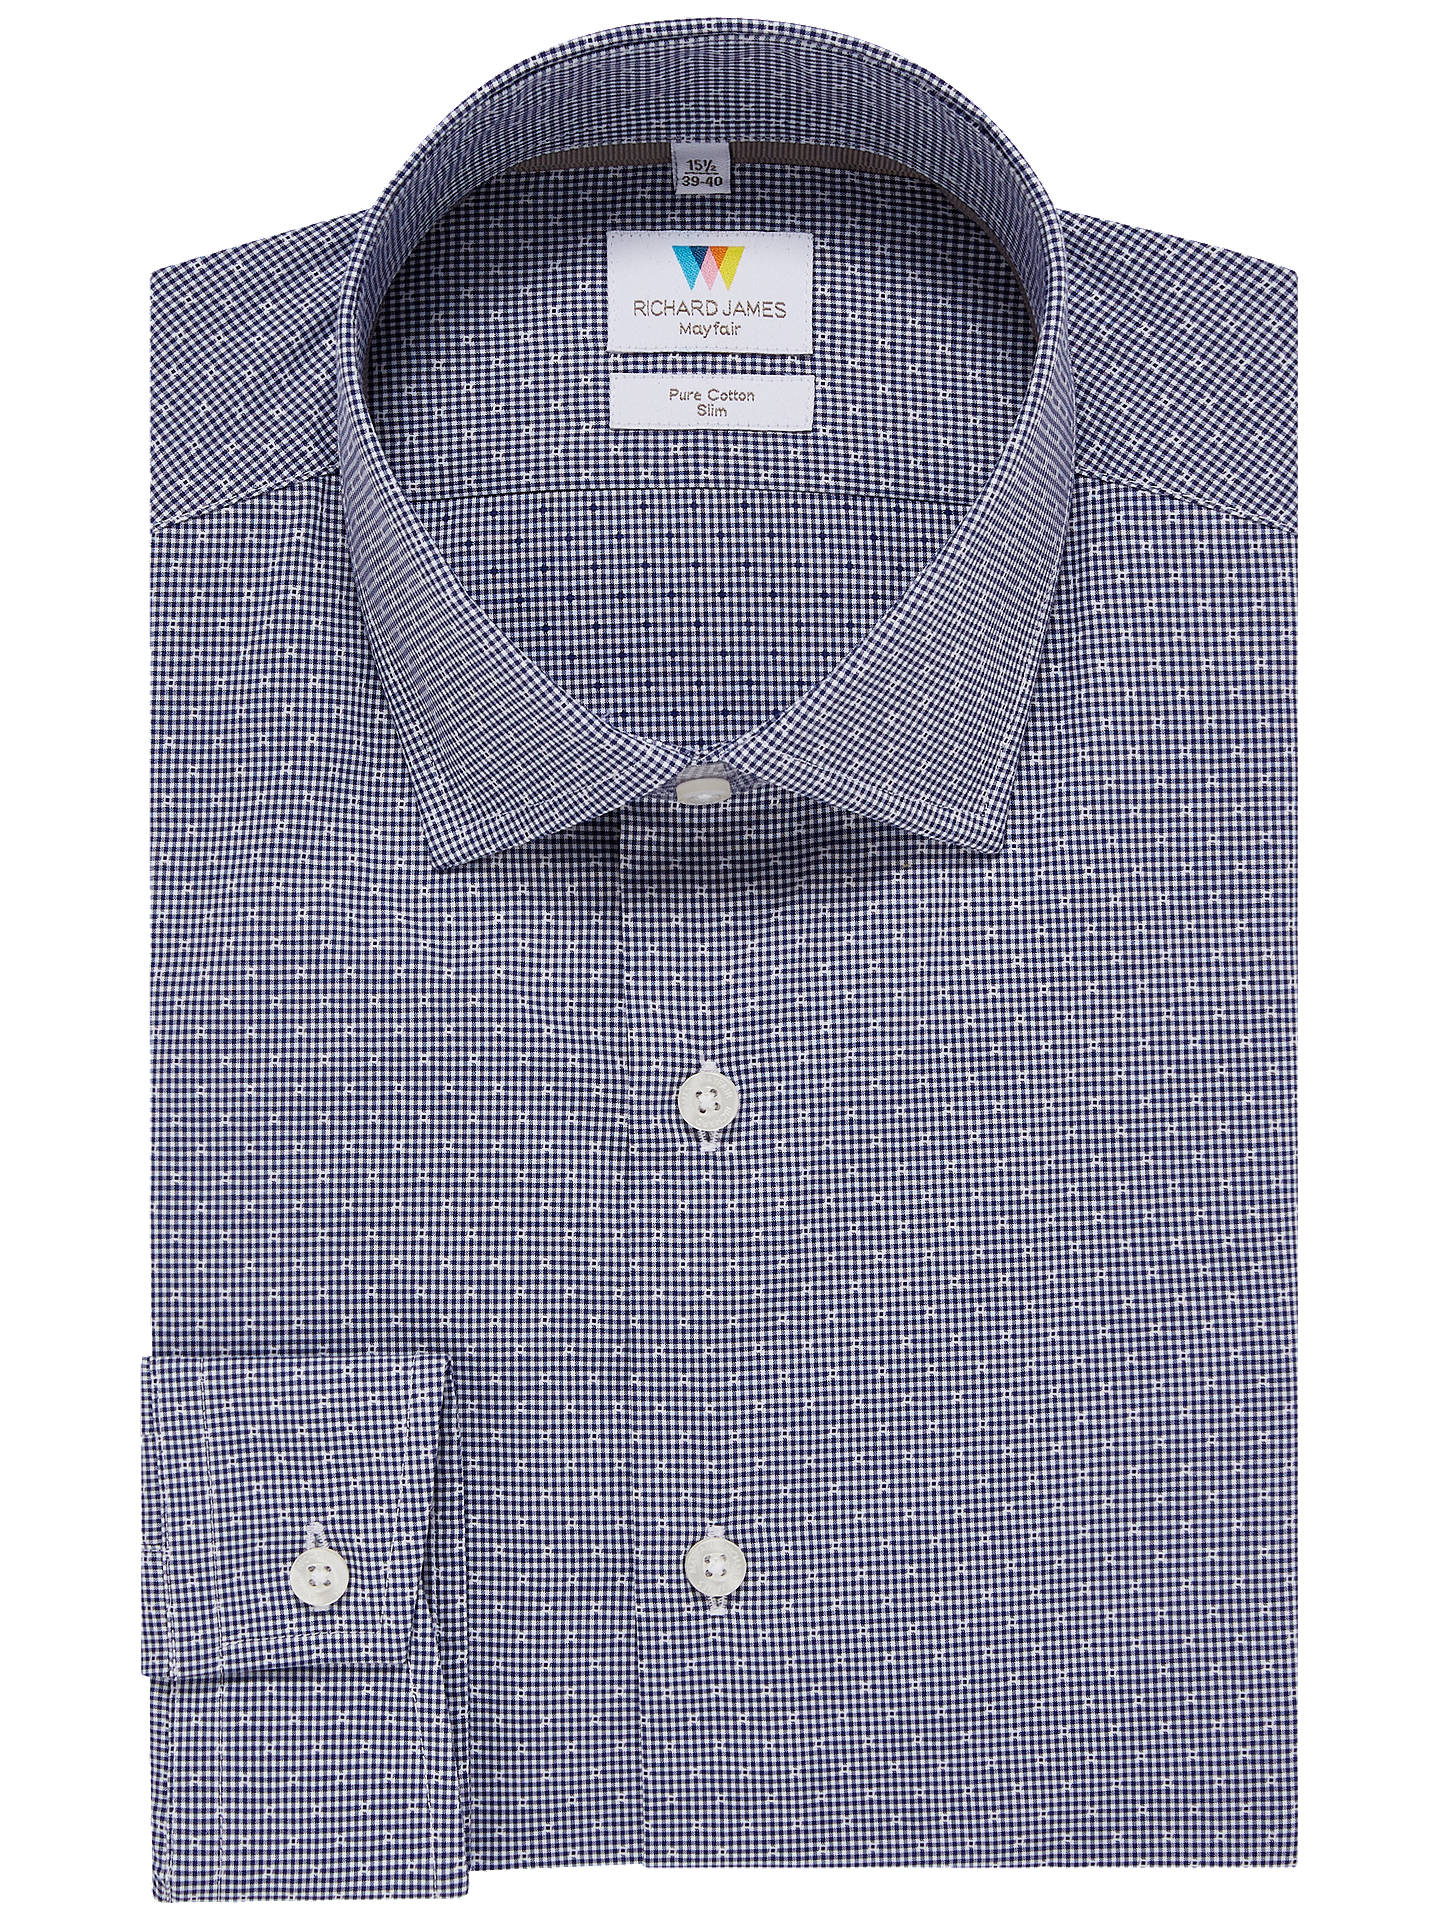 Buy Richard James Mayfair Gingham Dobby Slim Fit Shirt, Navy, 15 Online at johnlewis.com